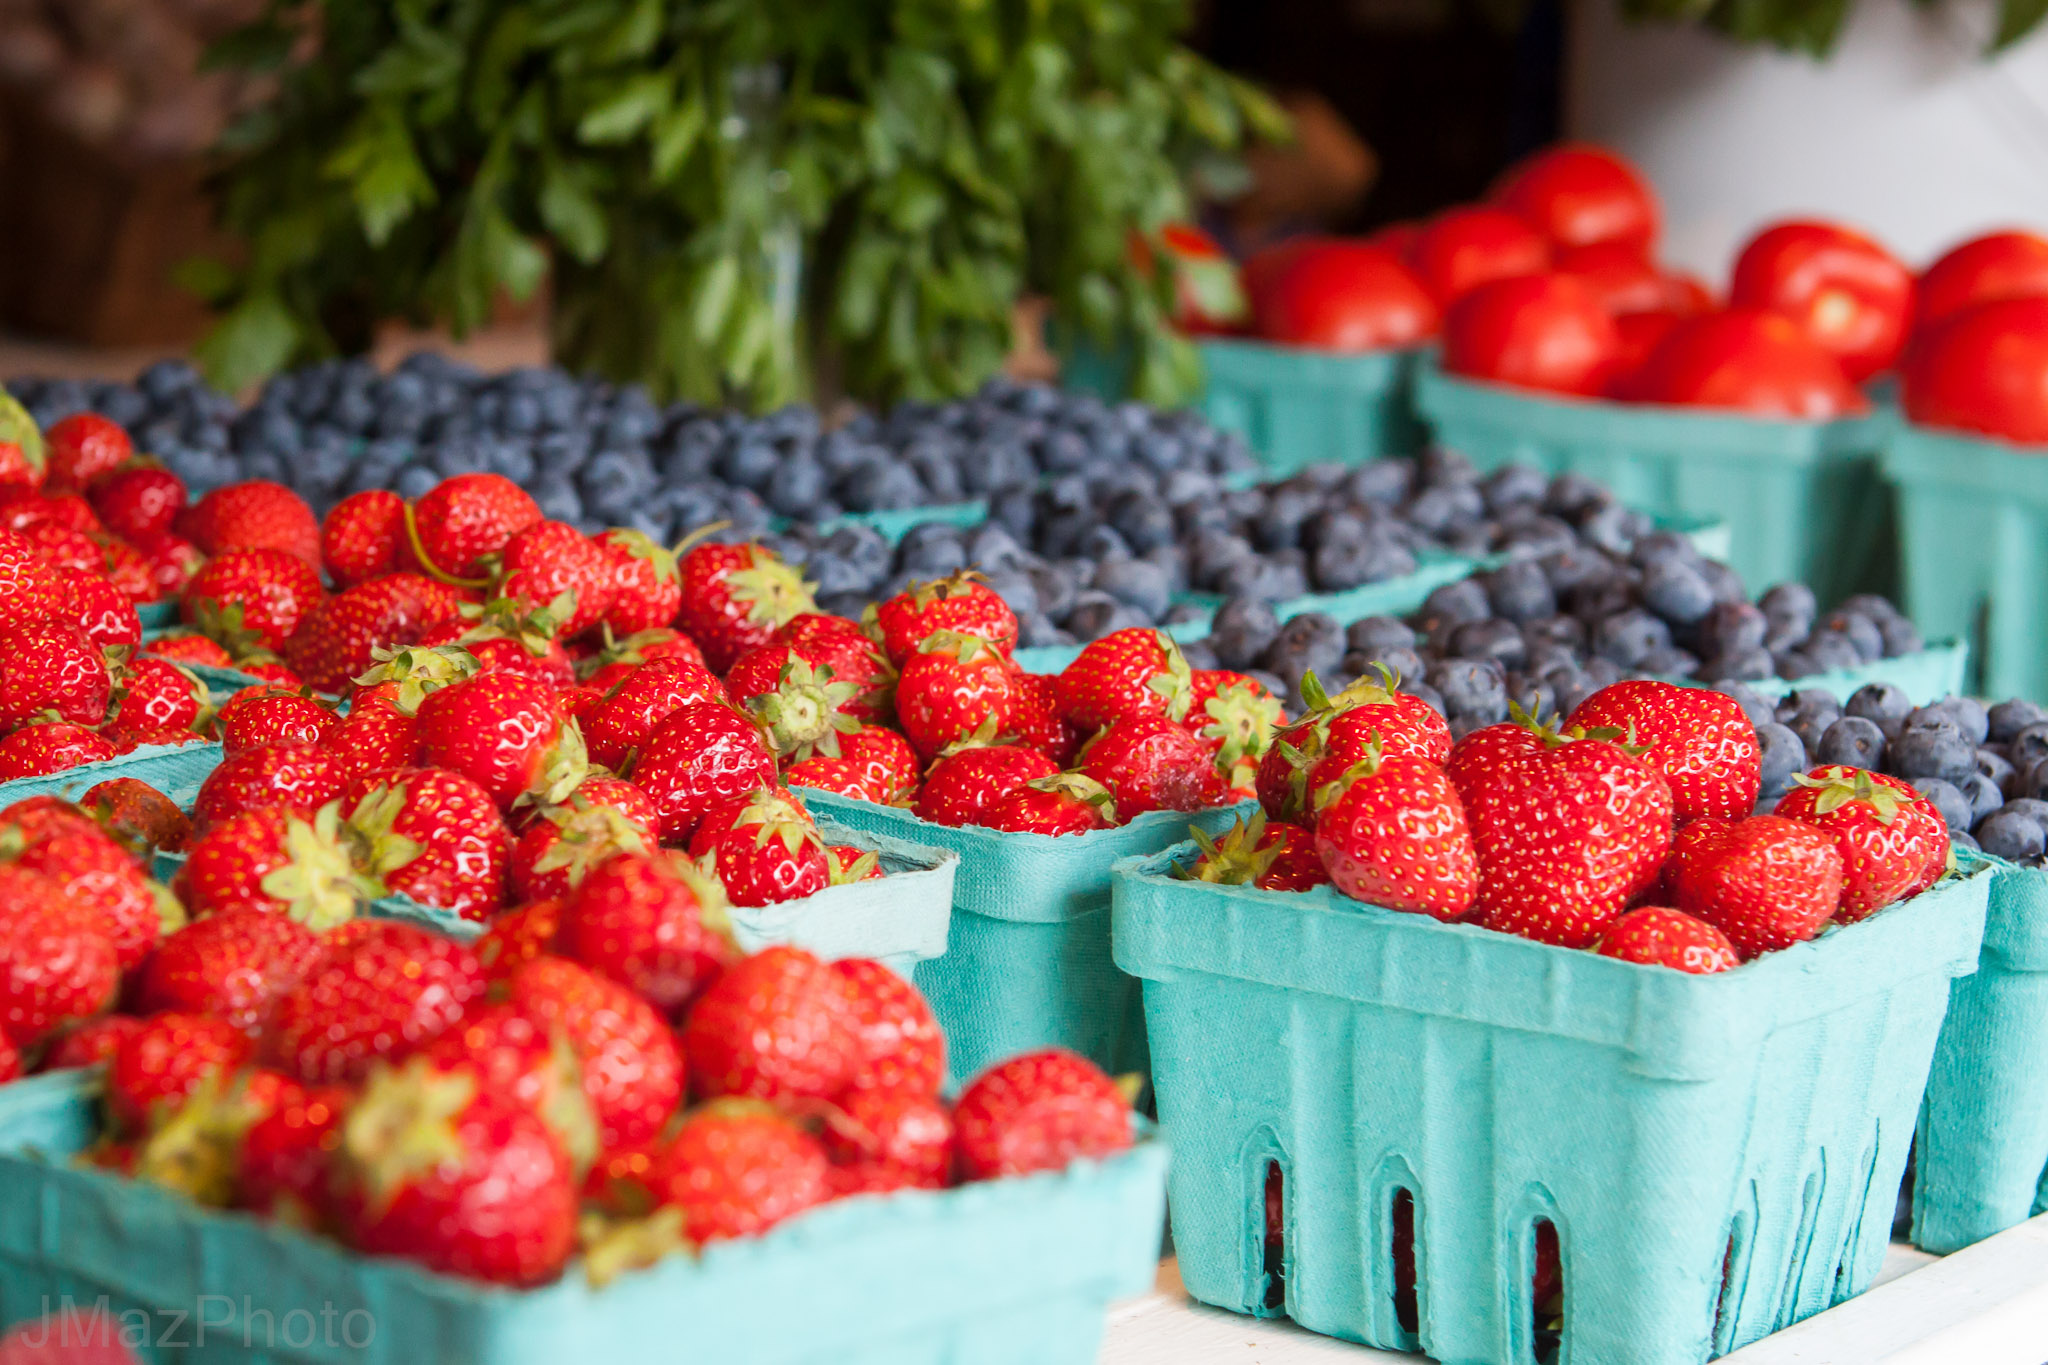 Strawberries & Blueberries in Containers